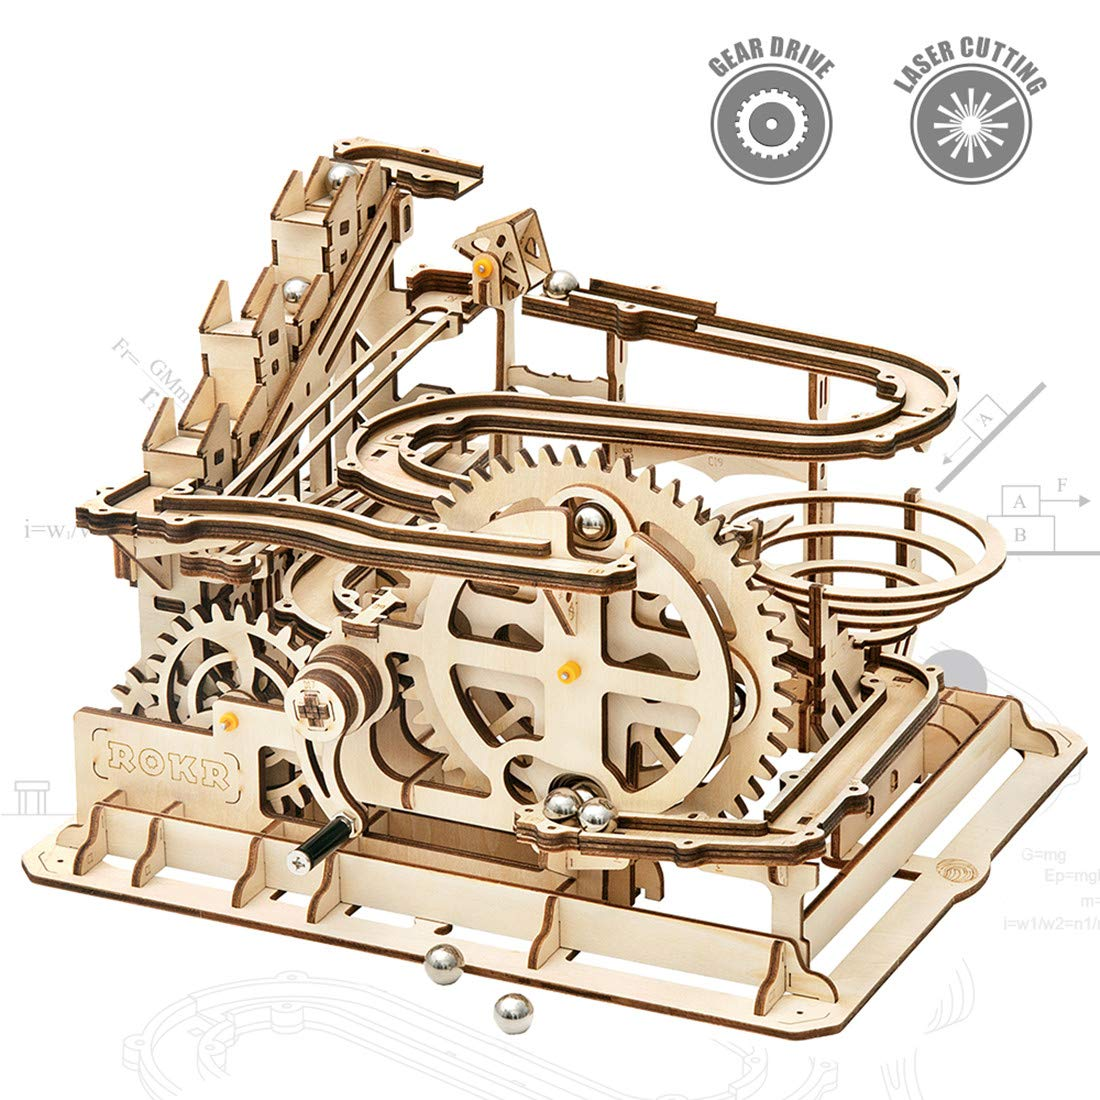 ROKR Mechanical 3D Wooden Puzzle Model Kit Adult Craft Set Educational Toy Building Engineering Set Christmas/Birthday/Thanksgiving Day Gift for Adults Boys Kids Age 14+(LG501-Waterwheel Coaster) by ROKR